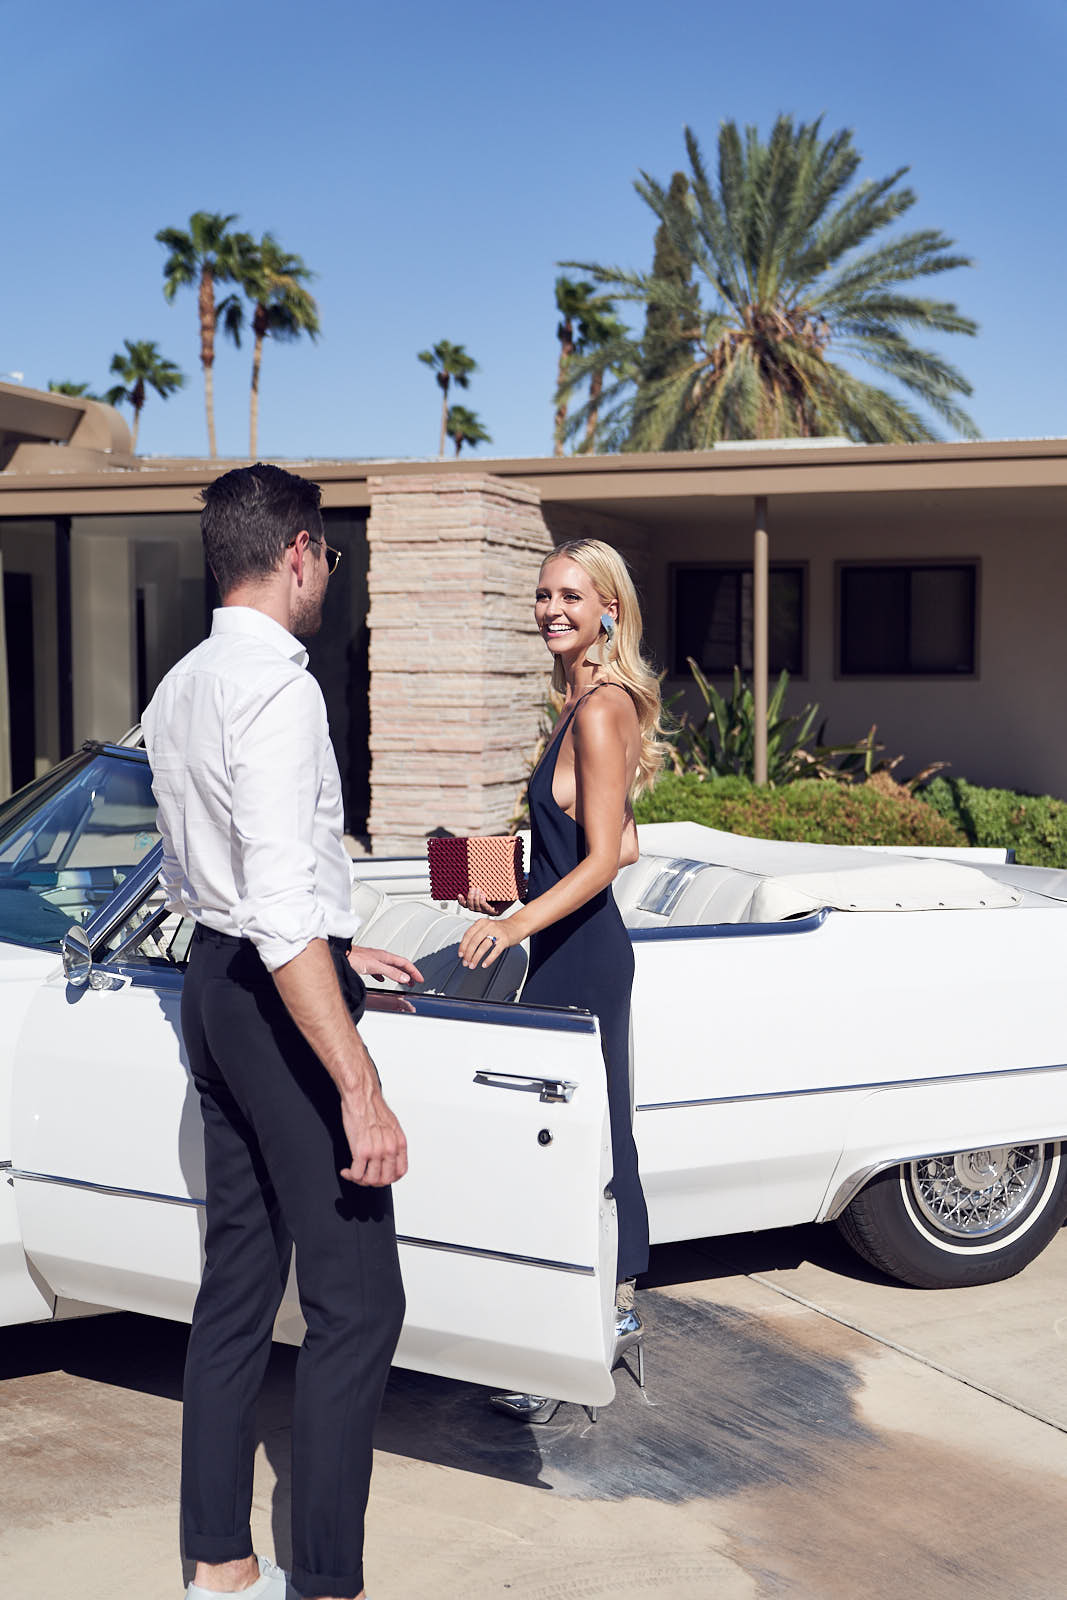 Saasha Burns and Sammy Leetham on their way to BEAR launch Frank Sinatra's House Palm Springs by Lost In Love Photography